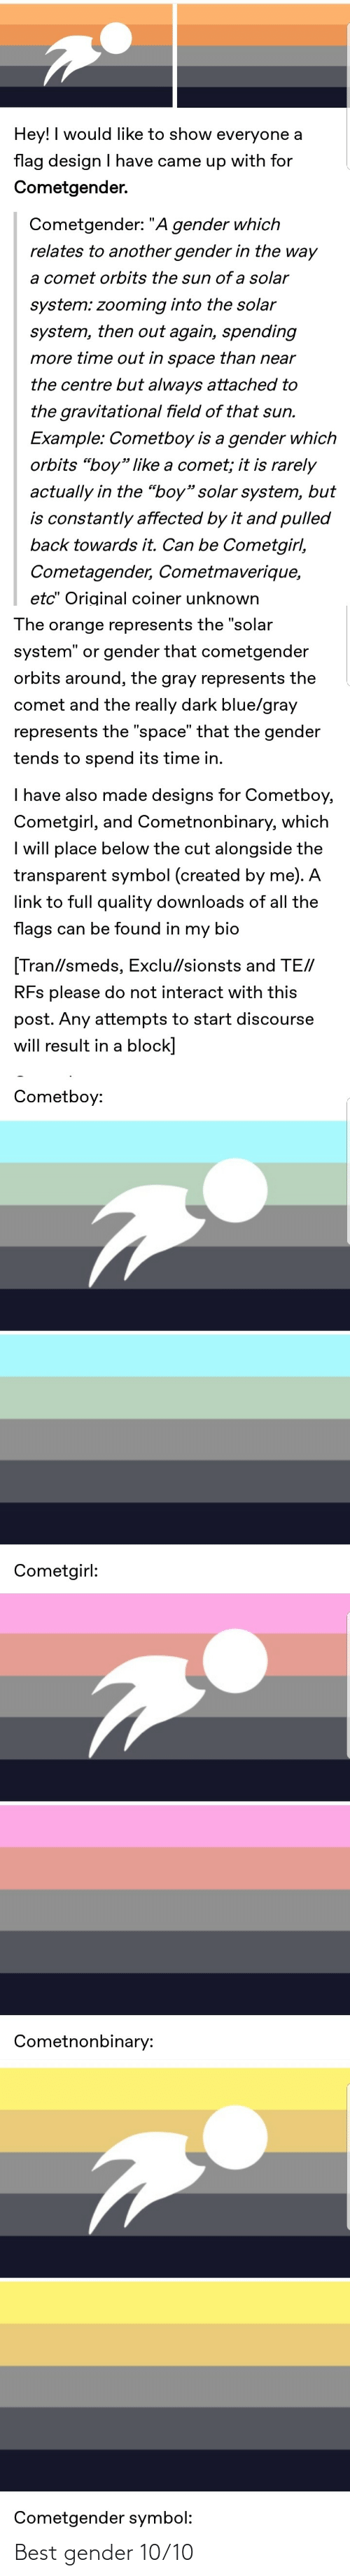 """Tumblr, Best, and Blue: Hey! I would like to show everyone a  flag design I have came up with for  Cometgender.  Cometgender: """"A gender which  relates to another gender in the way  a comet orbits the sun of a solar  system: zooming into the solar  system, then out again, spending  more time out in space than near  the centre but always attached to  the gravitational field of that sun.  Example: Cometboy is a gender which  orbits """"boy"""" like a comet; it is rarely  actually in the """"boy"""" solar system, but  is constantly affected by it and pulled  back towards it. Can be Cometgirl,  Cometagender, Cometmaverique,  etc"""" Original coiner unknown  The orange represents the """"solar  system"""" or gender that cometgender  orbits around, the gray represents the  comet and the really dark blue/gray  represents the """"space"""" that the gender  tends to spend its time in.  I have also made designs for Cometboy,  Cometgirl, and Cometnonbinary, which  I will place below the cut alongside the  transparent symbol (created by me). A  link to full quality downloads of all the  flags can be found in my bio  [Tran//smeds, Exclu//sionsts and TE//  RFs please do not interact with this  post. Any attempts to start discourse  will result in a block]  Cometboy:  Cometgirl:  Cometnonbinary:  Cometgender symbol: Best gender 10/10"""